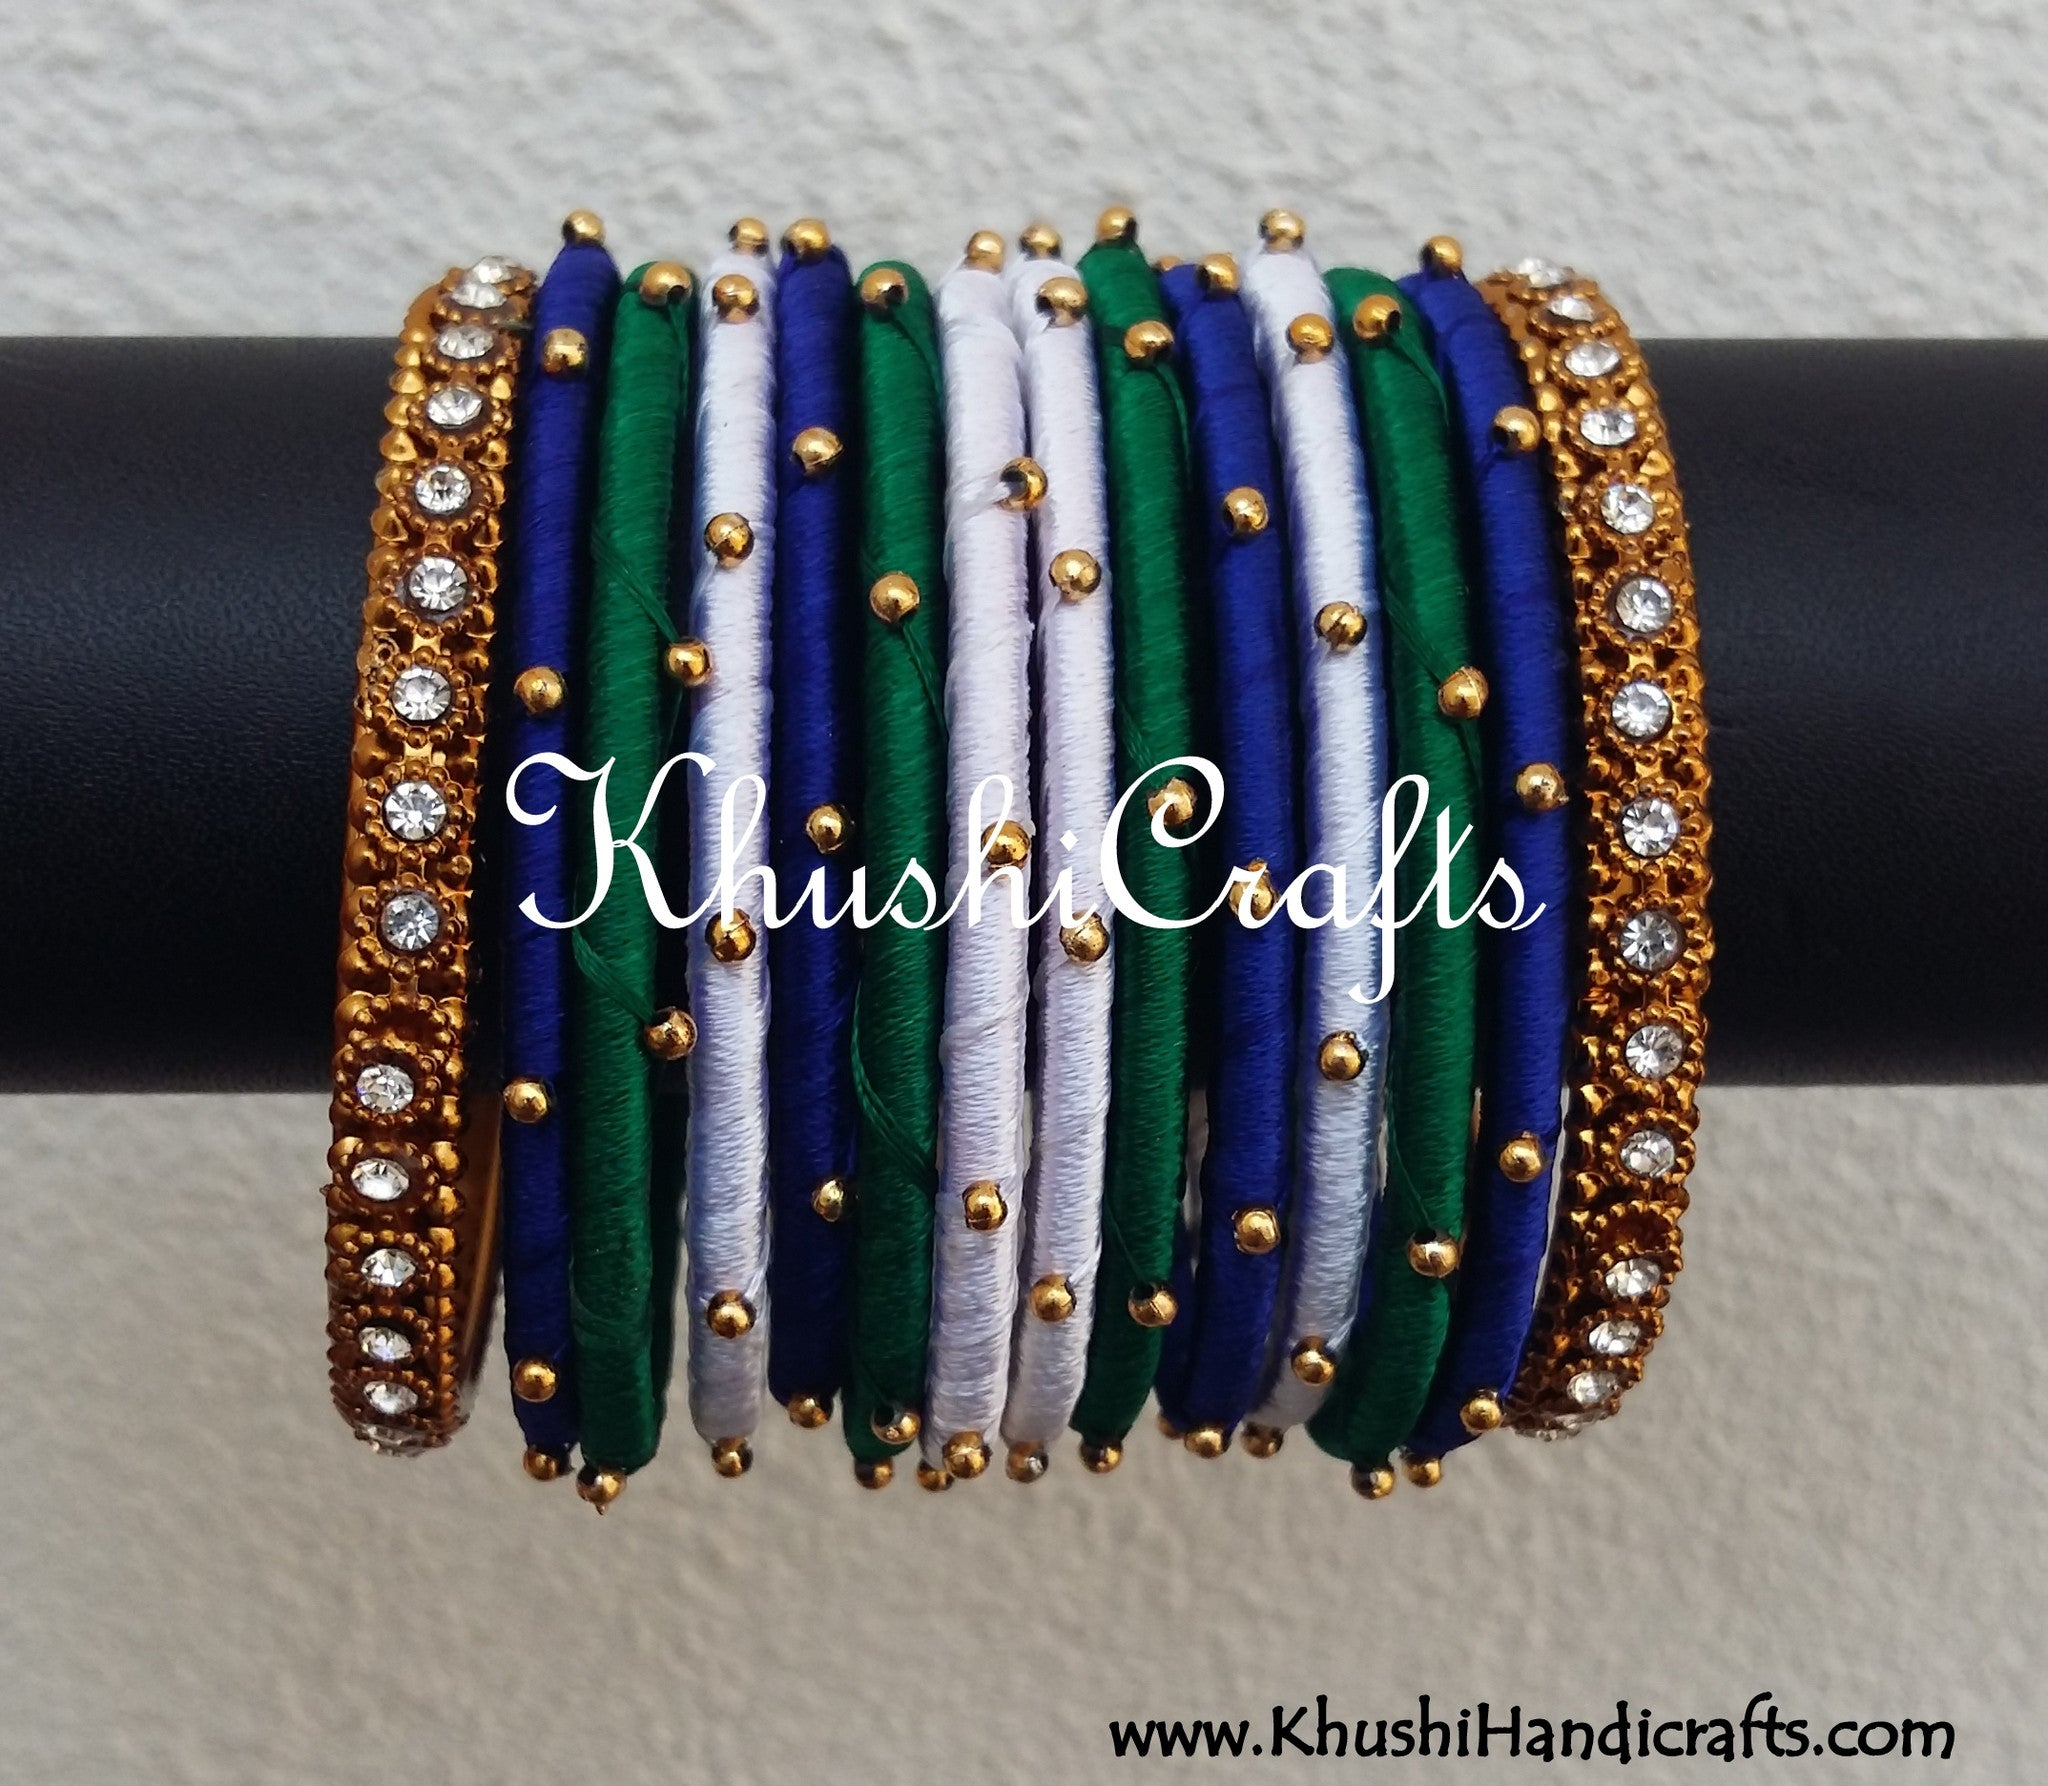 Hand-crafted exquisite Silk Bangles in Green,White and Blue - Khushi Handmade Jewellery